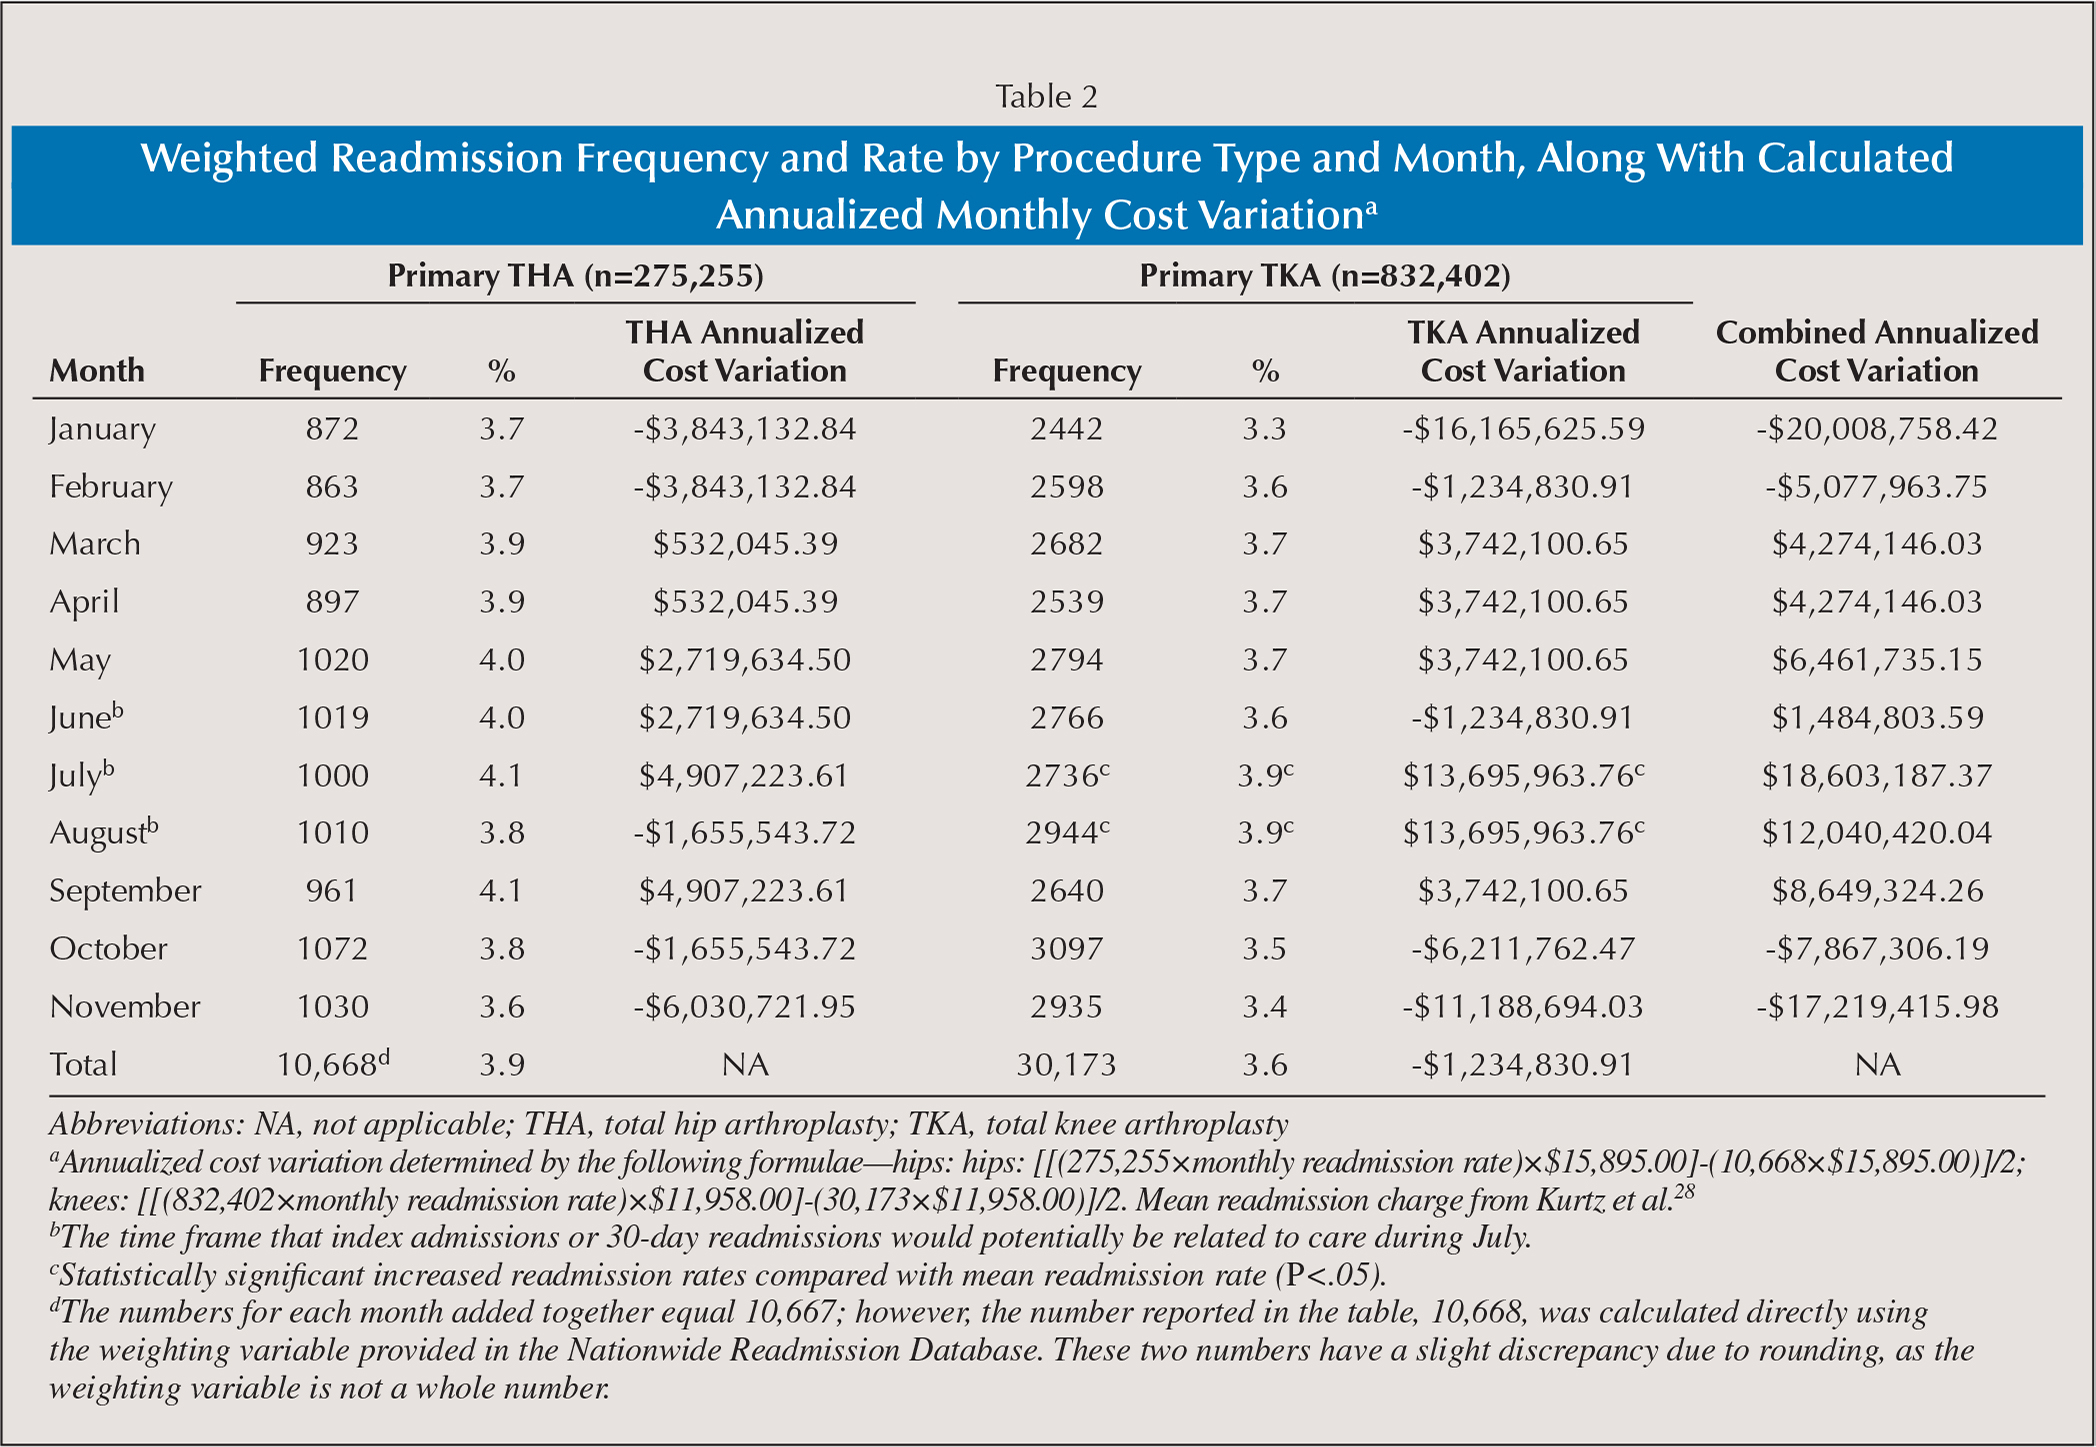 Weighted Readmission Frequency and Rate by Procedure Type and Month, Along With Calculated Annualized Monthly Cost Variationa